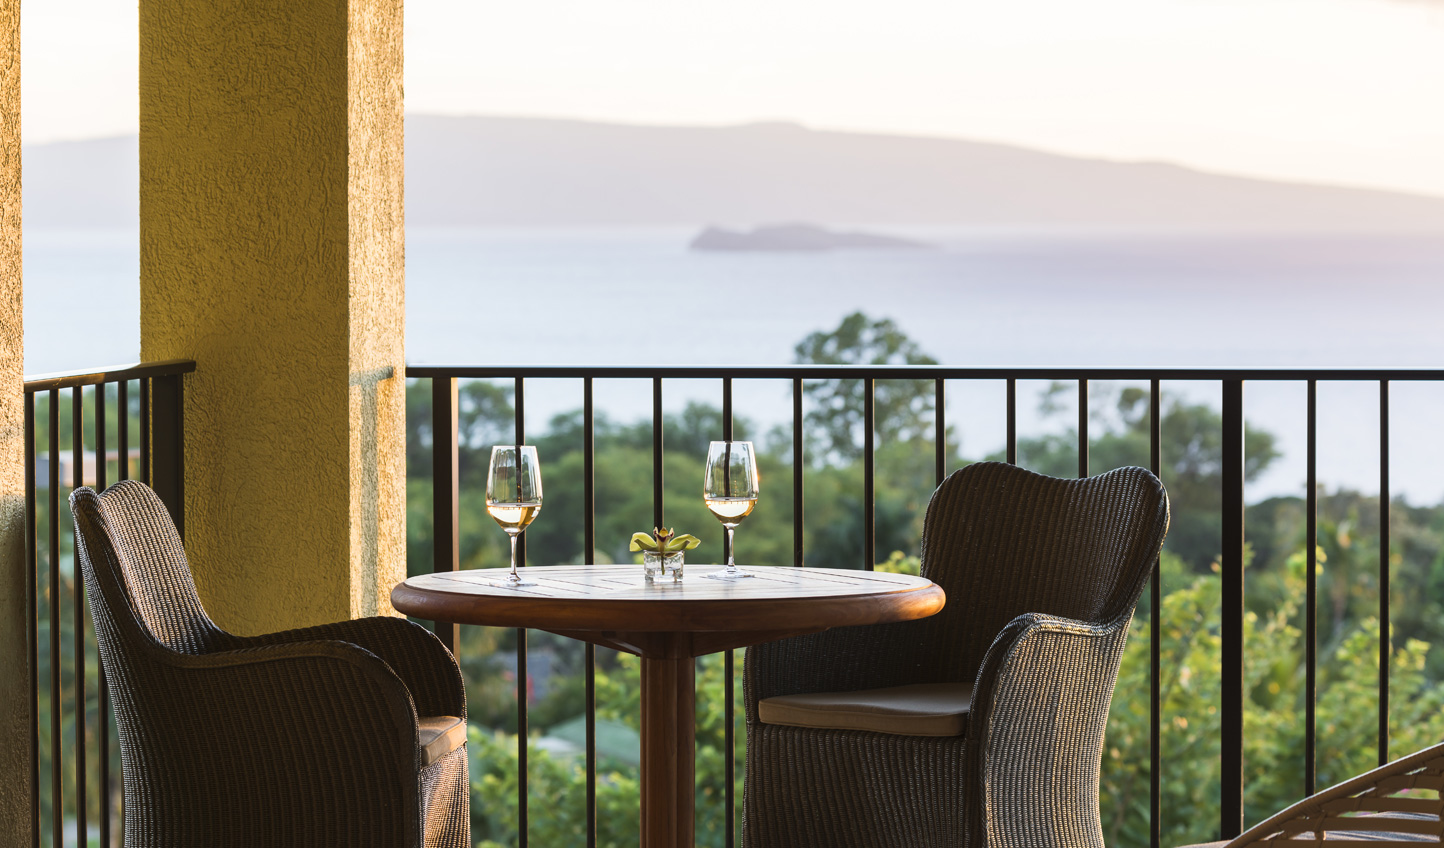 Enjoy a glass of wine over fiery sunsets on your private balcony